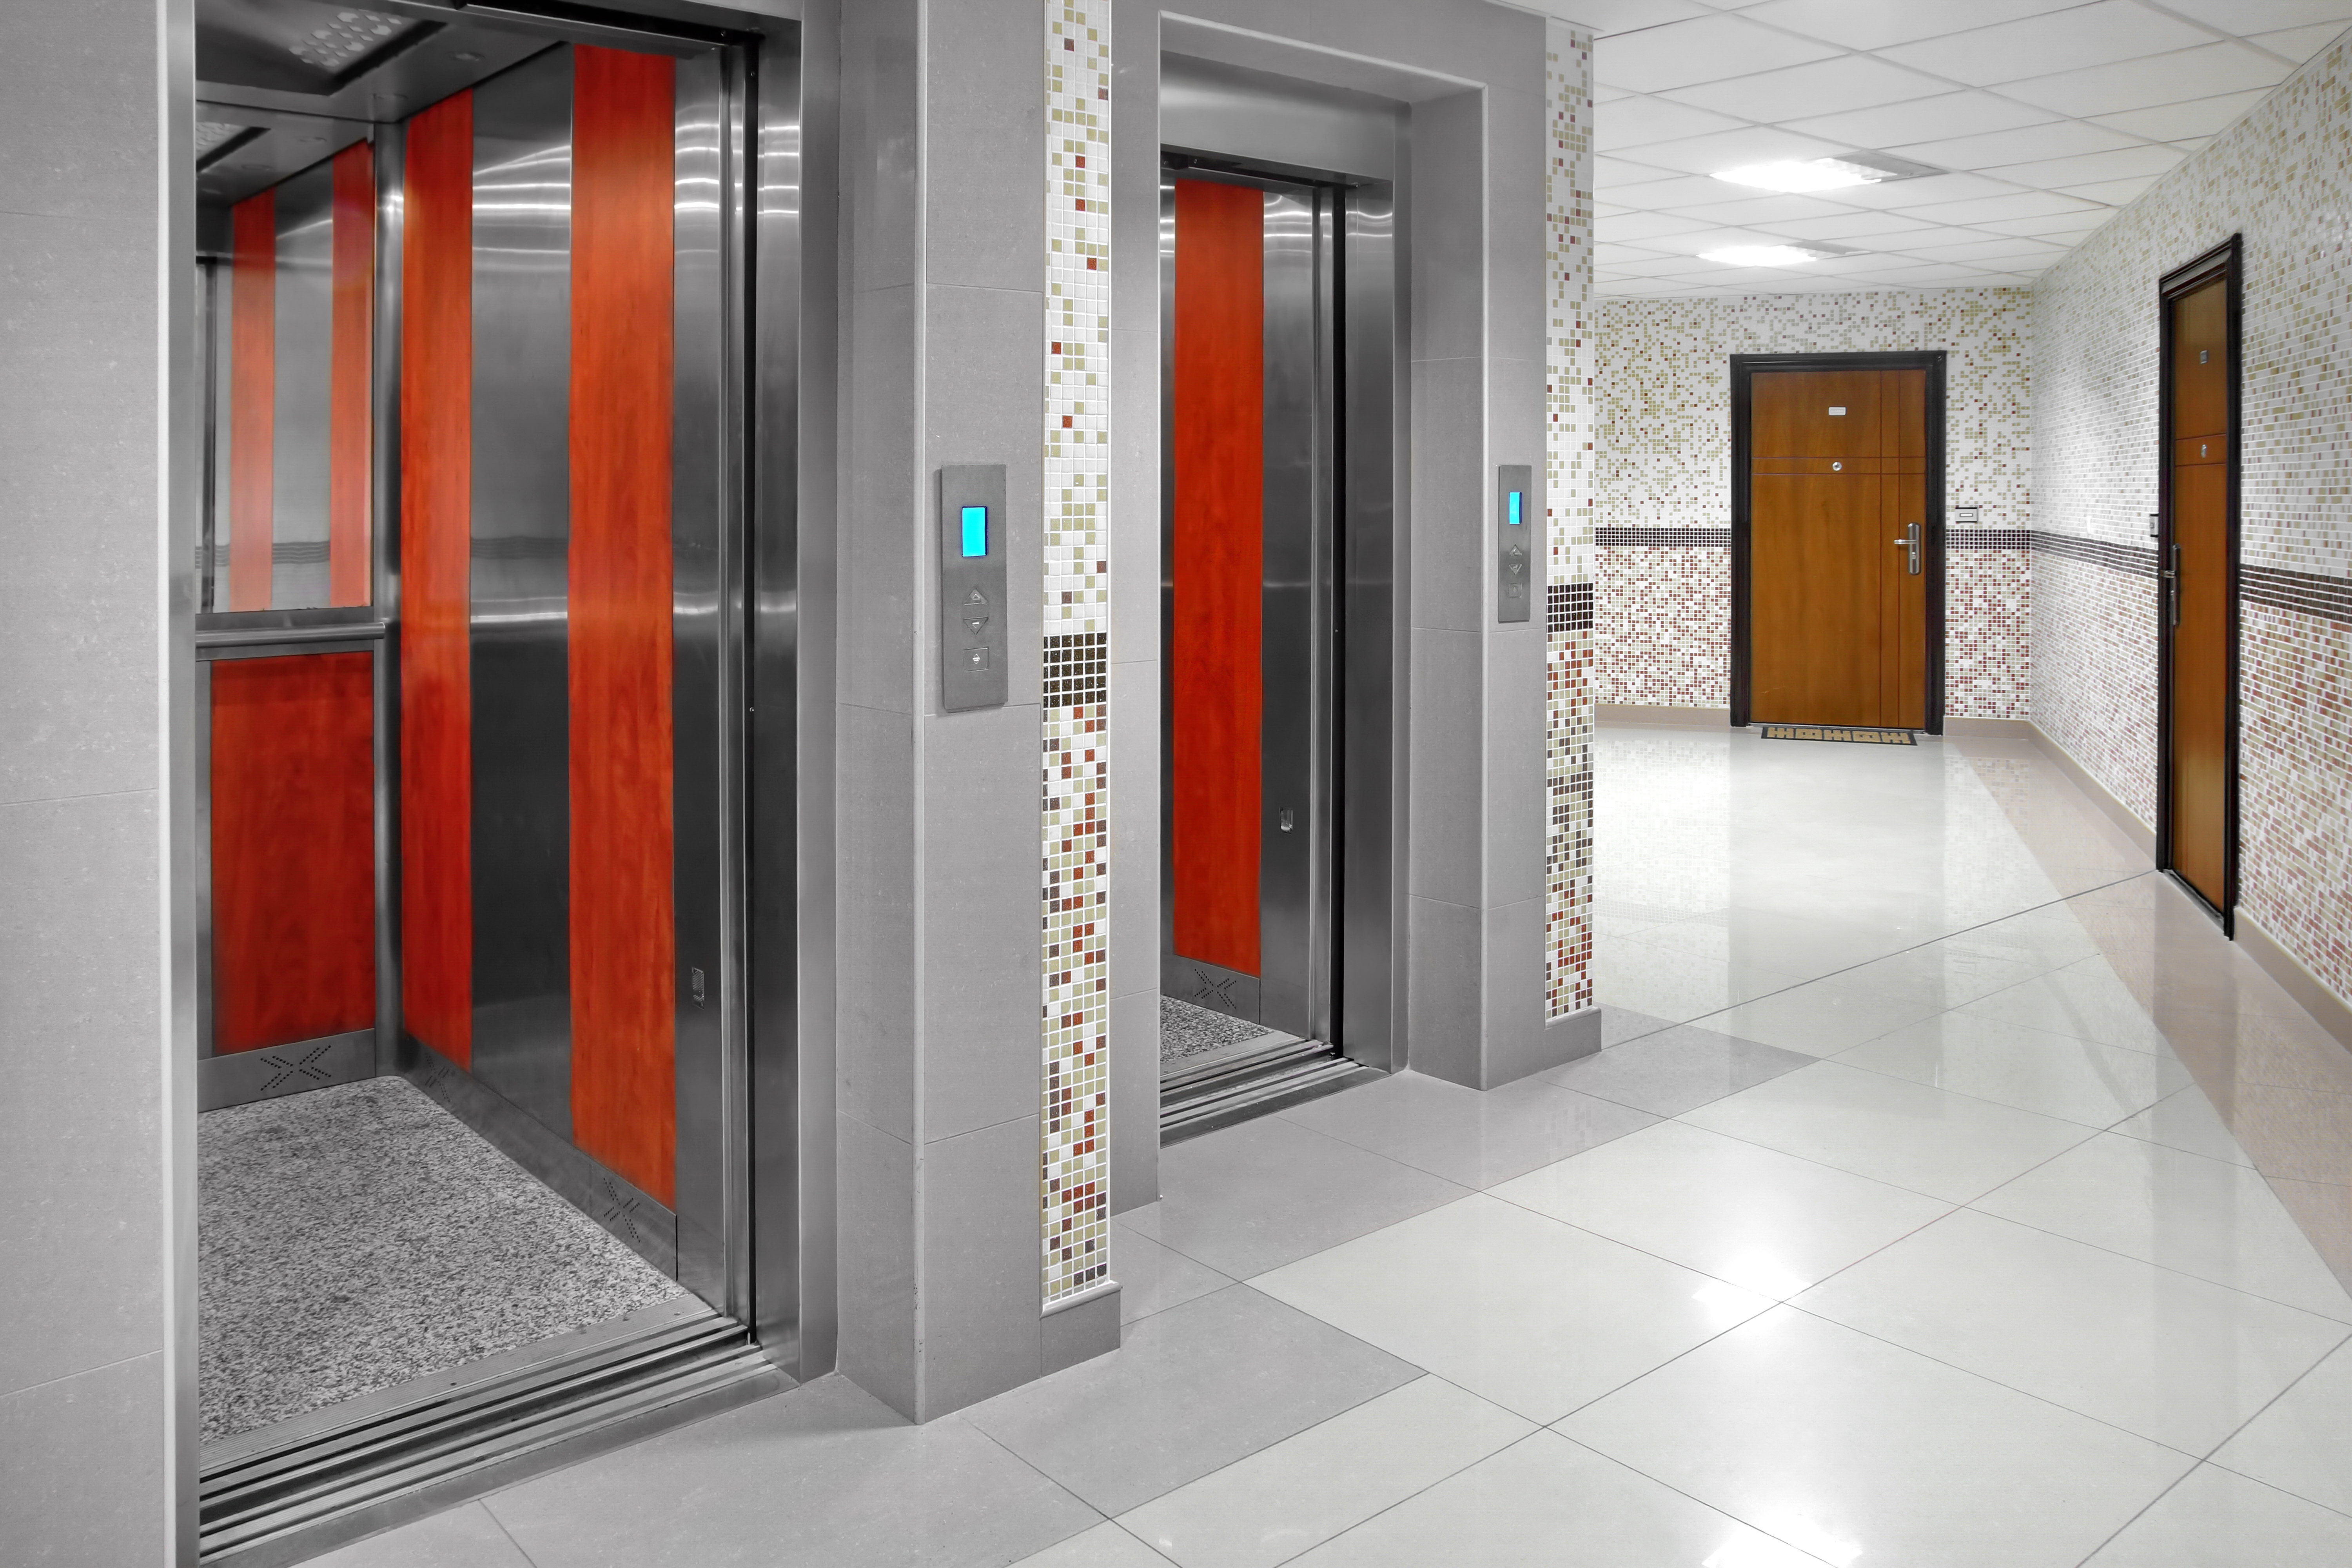 Types of commercial lifts and their uses - Designing